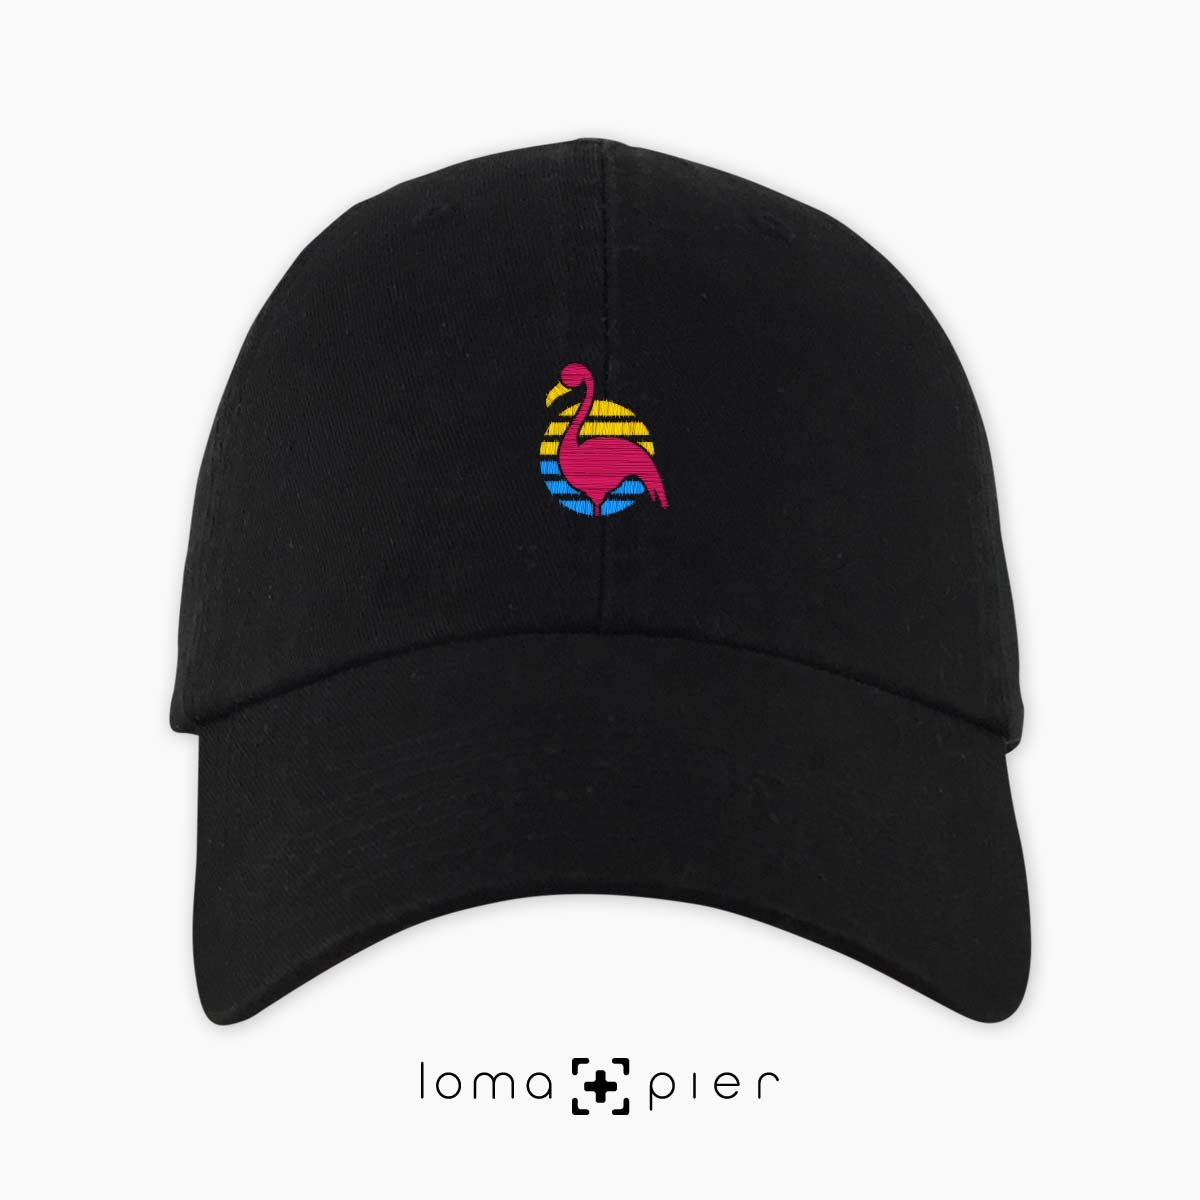 FLAMINGO icon embroidered on a black unstructured dad hat by loma+pier hat store made in the USA